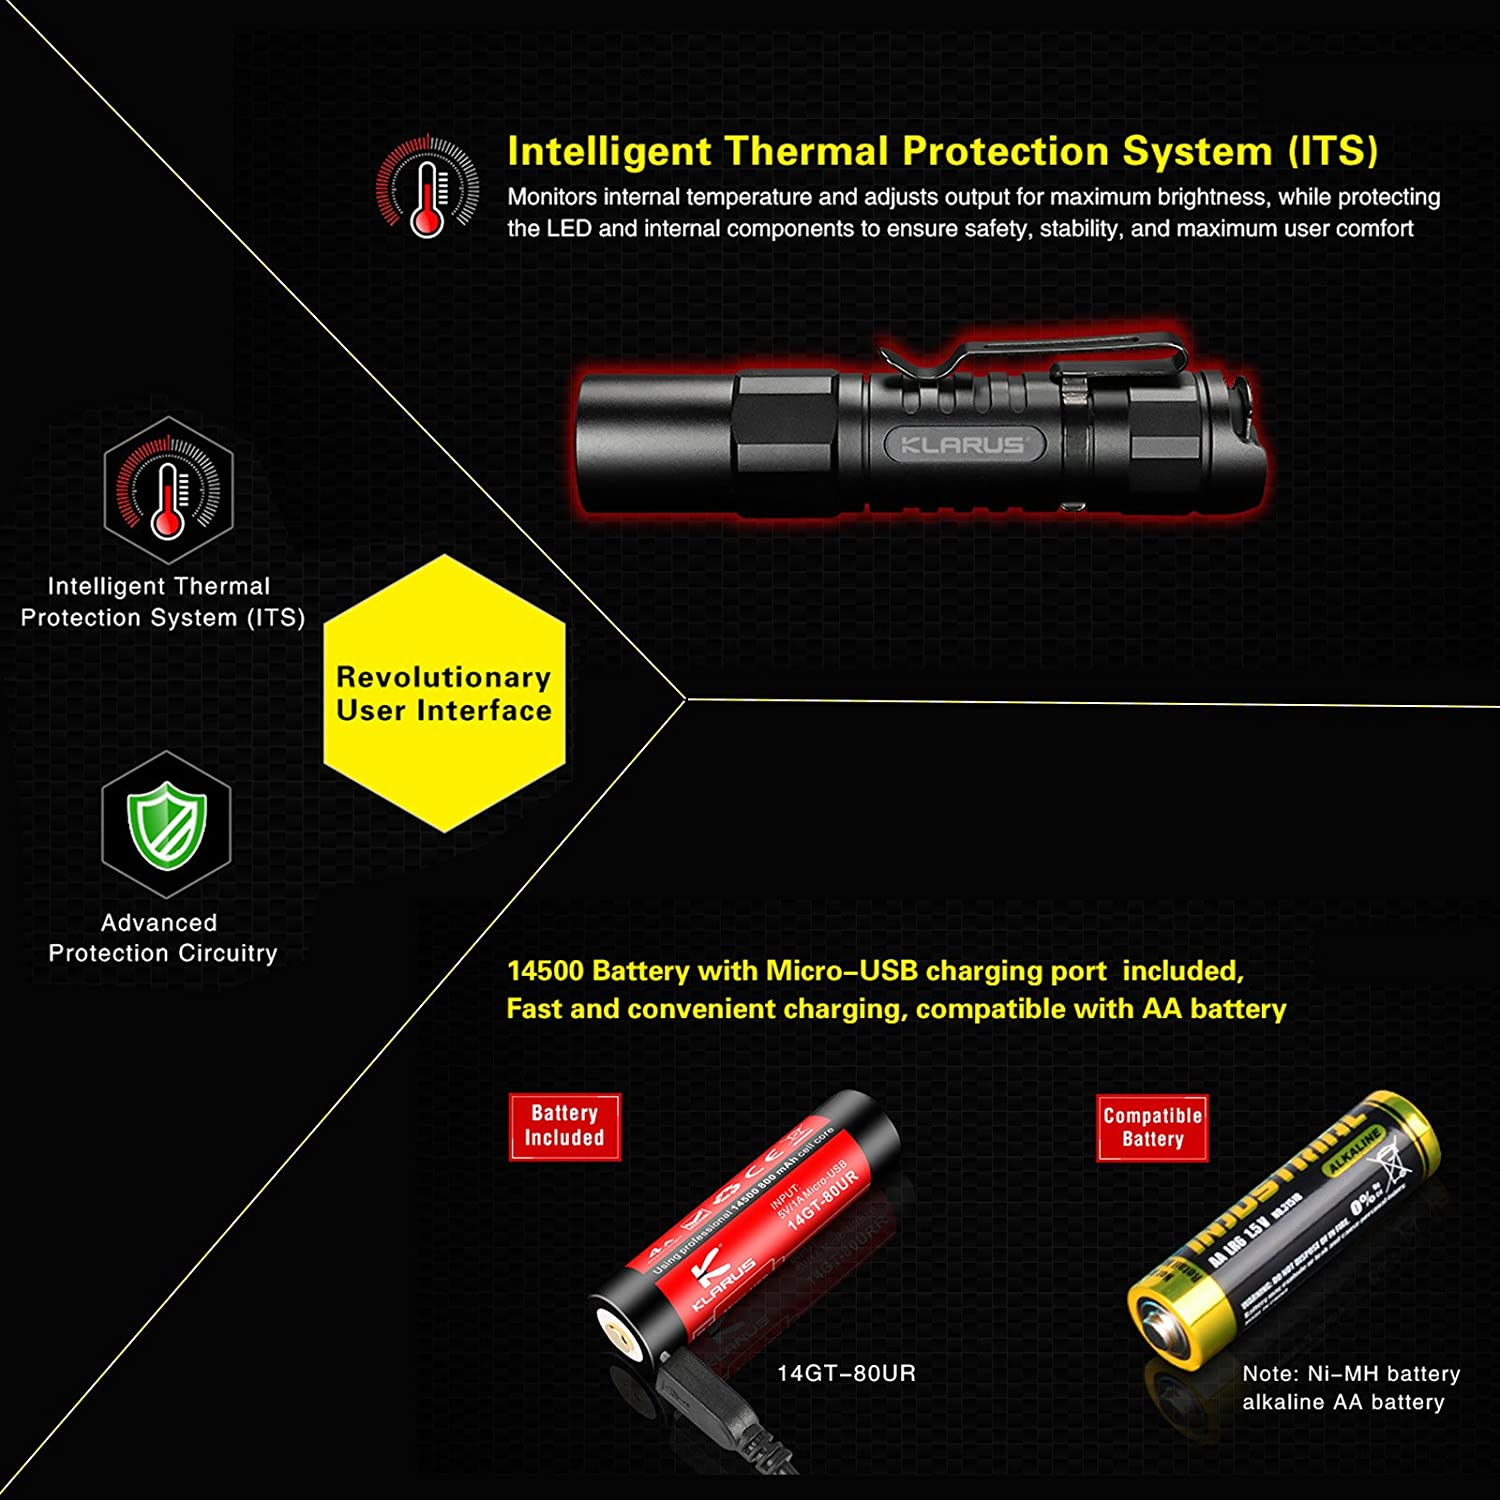 Klarus Xt1a Tactical Edc Flashlight 1000 Lumen 182meters Cree Xp L Other Circuits Gt Model Aeroplane Navigation Strobe Hd V6 Led Compact Small Torches Lightweight Portable Torch With 14500 Battery